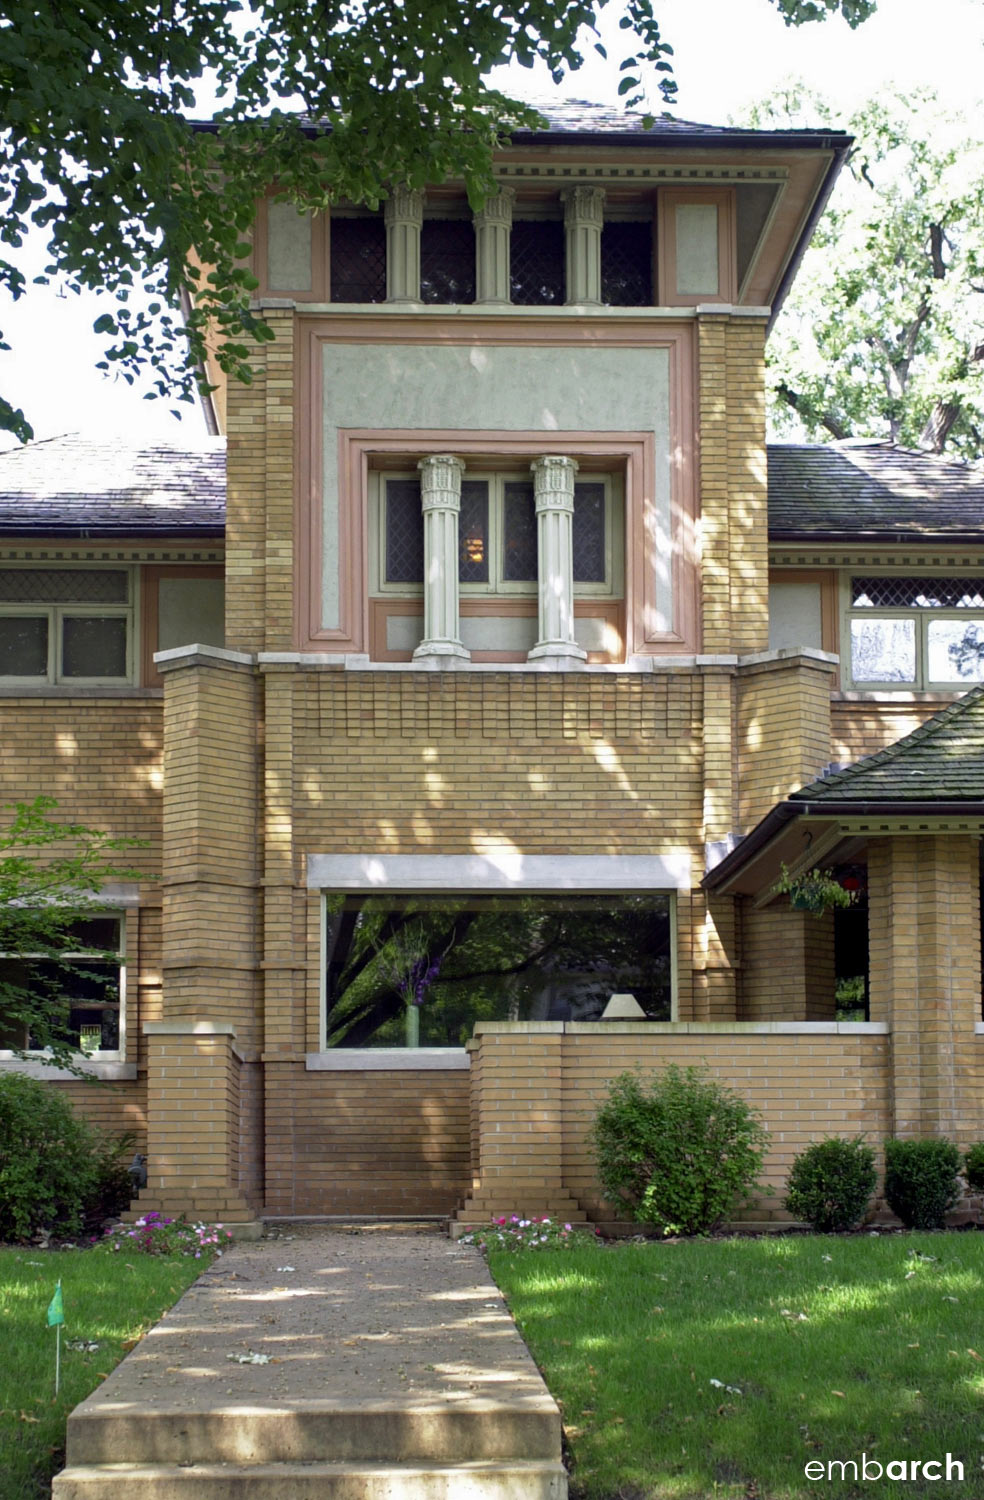 R Furbeck House - exterior